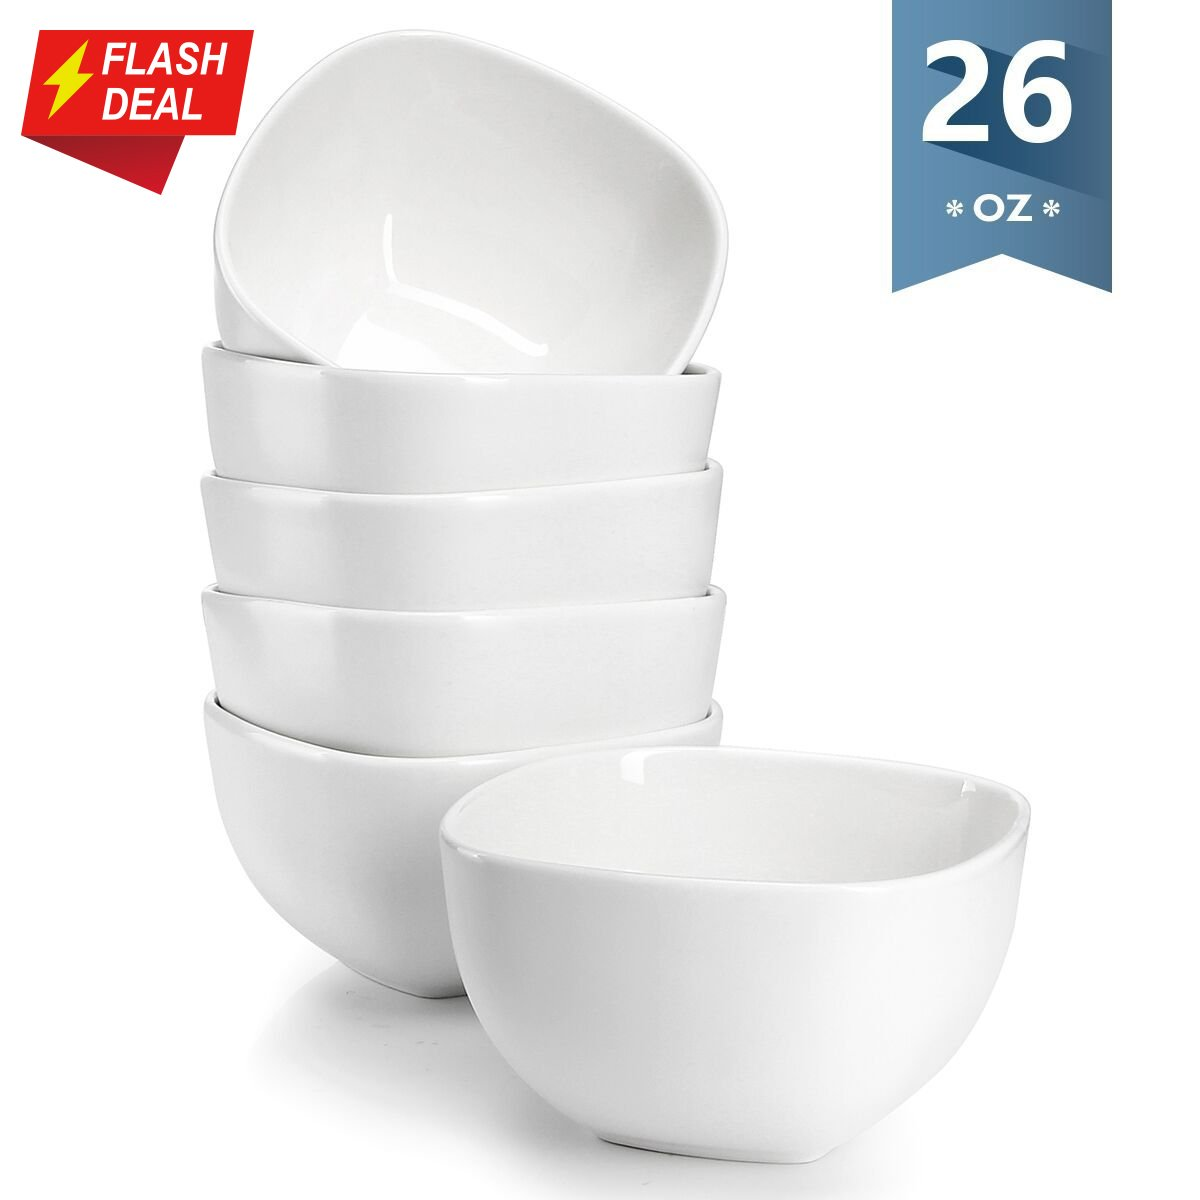 Sweese 1304 Porcelain Square Bowl Set - 26 Ounce Deep and Microwavable for Cereal, Soup and Fruit - Set of 6, Matte White